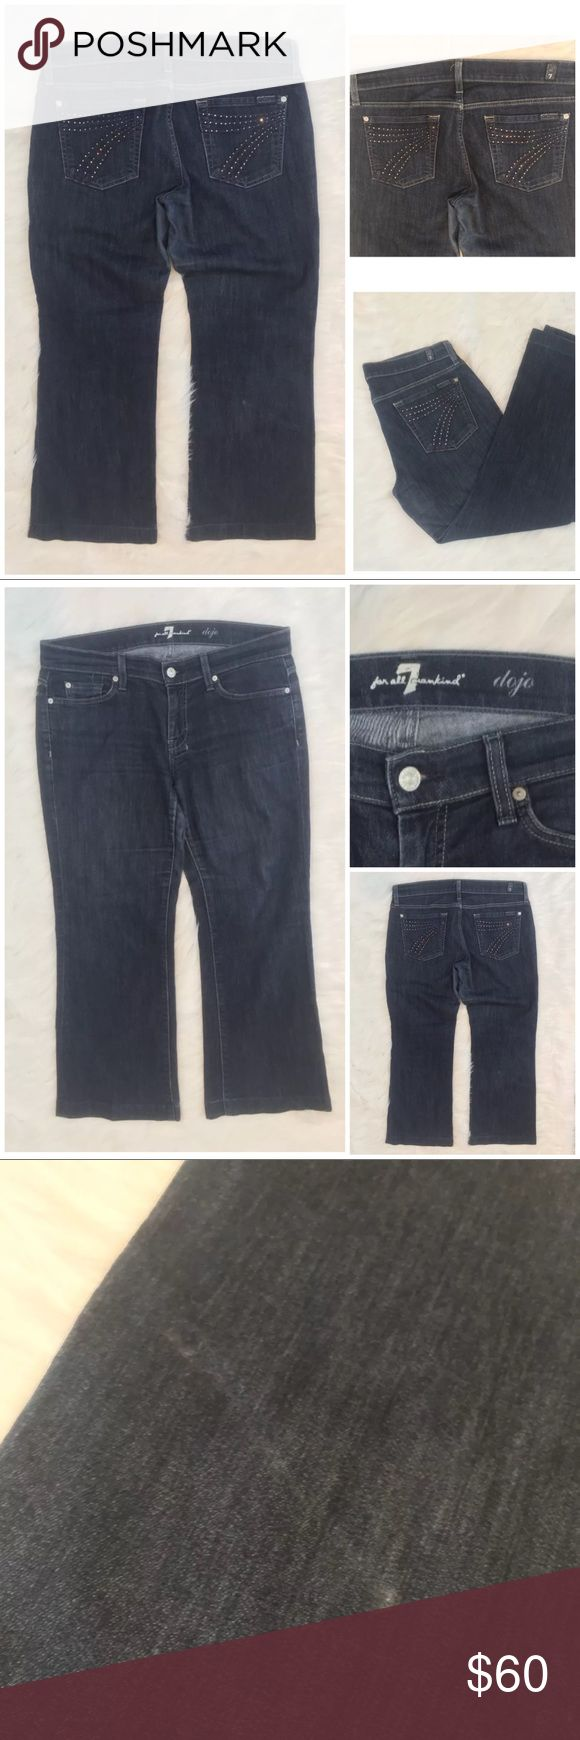 7 FoR all mankind Jeans dojo Size 30 wide leg 7 FoR all mankind Women Jeans dojo Size 30 wide leg        Brand: 7 for all mankind  Size: 30  Color: blue  Condition: good, but has some imperfections - please check pictures      Stock number: B005 7 For All Mankind Jeans Flare & Wide Leg